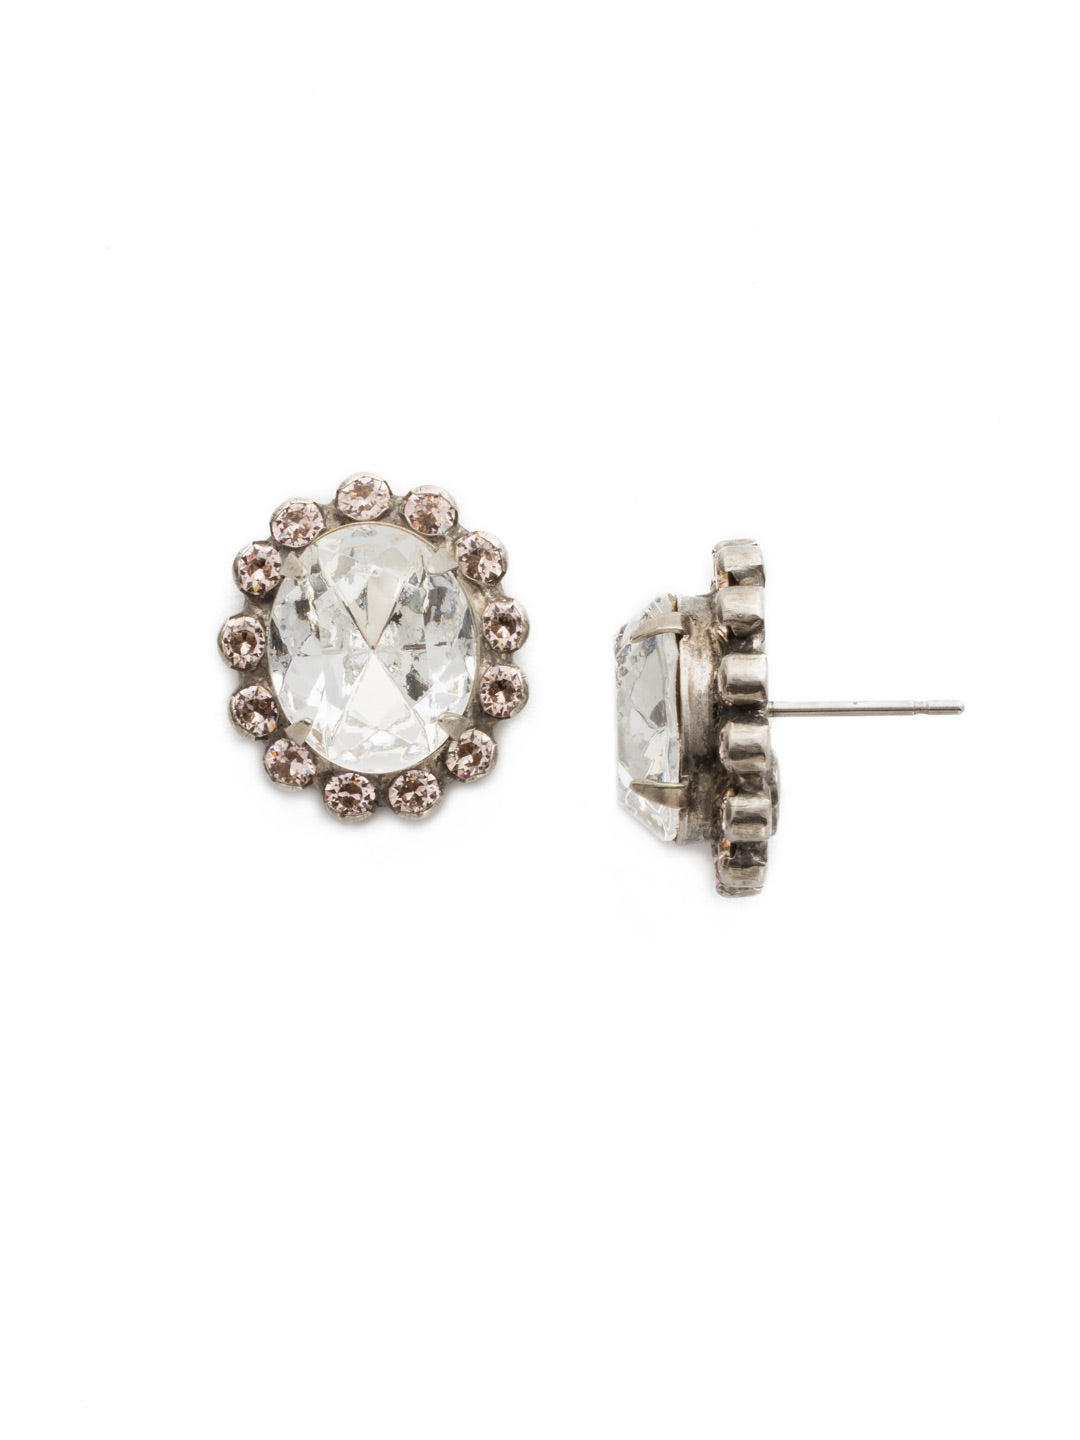 Crystal Encrusted Oval Stud Earrings - ECY5ASSNB